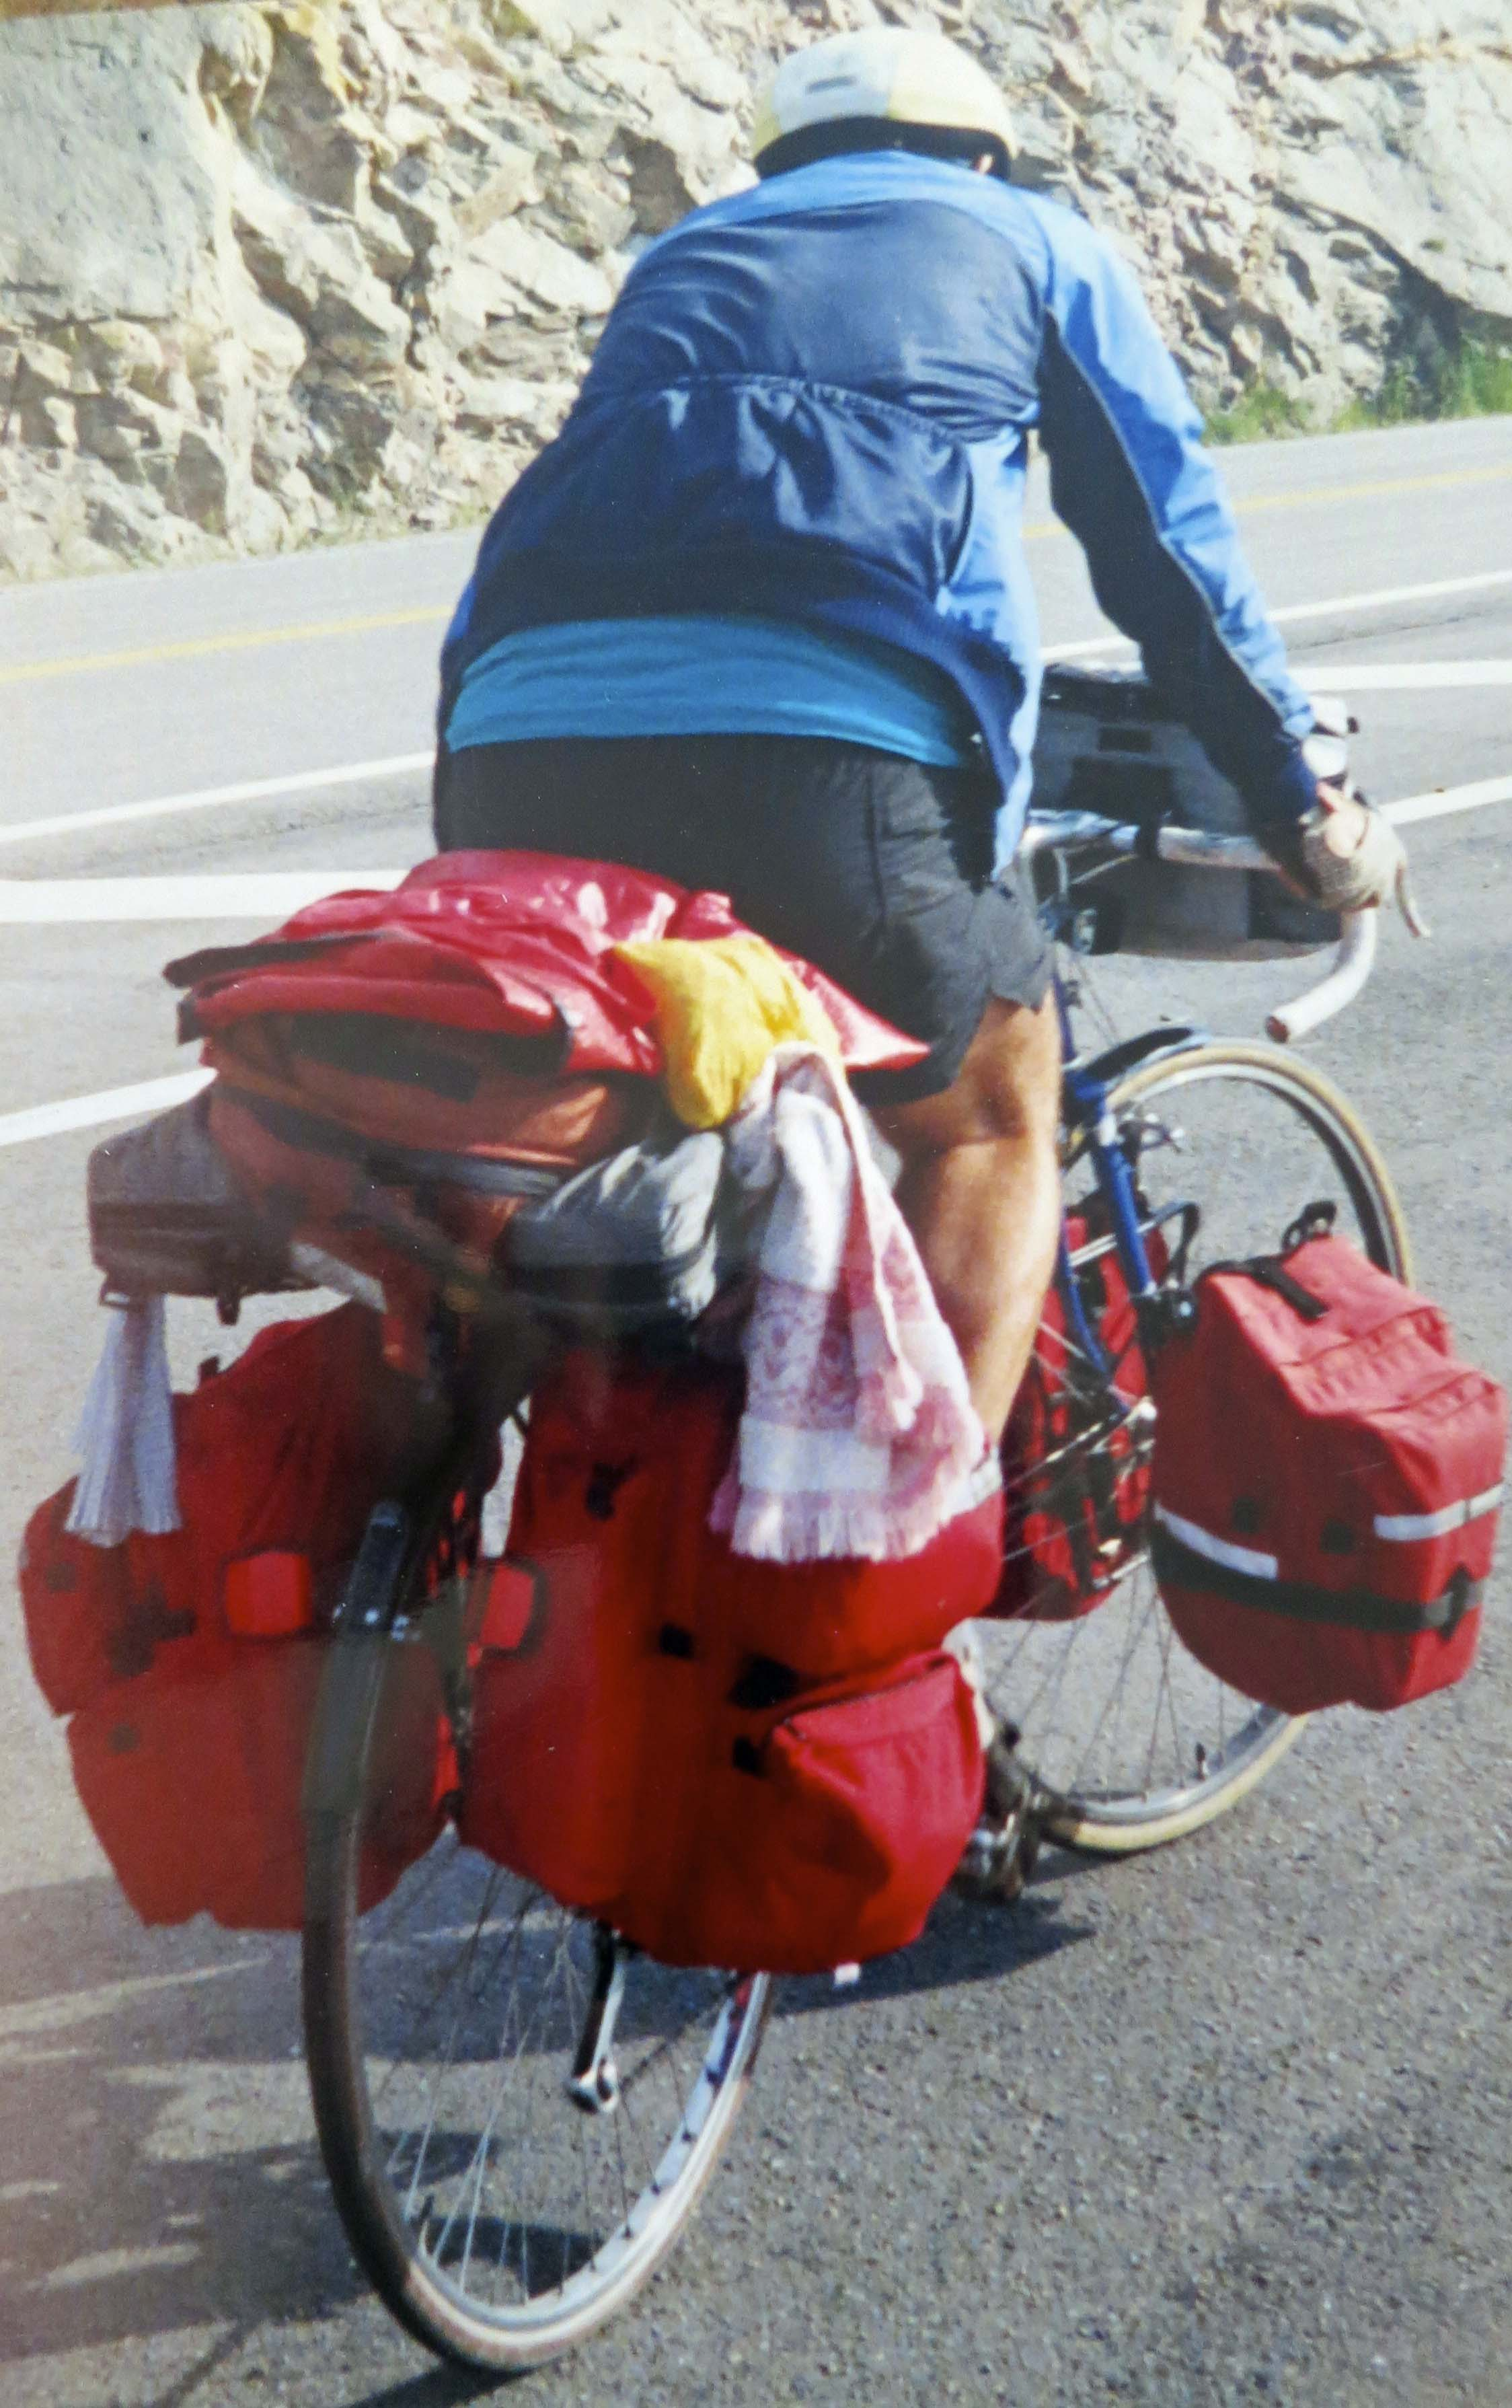 Ever wonder what it takes to bicycle 10,000 miles? One of my friends has suggested strong legs and a weak mind. I was half way through my trip bicycling up a very steep hill in Nova Scotia when this photo was taken.